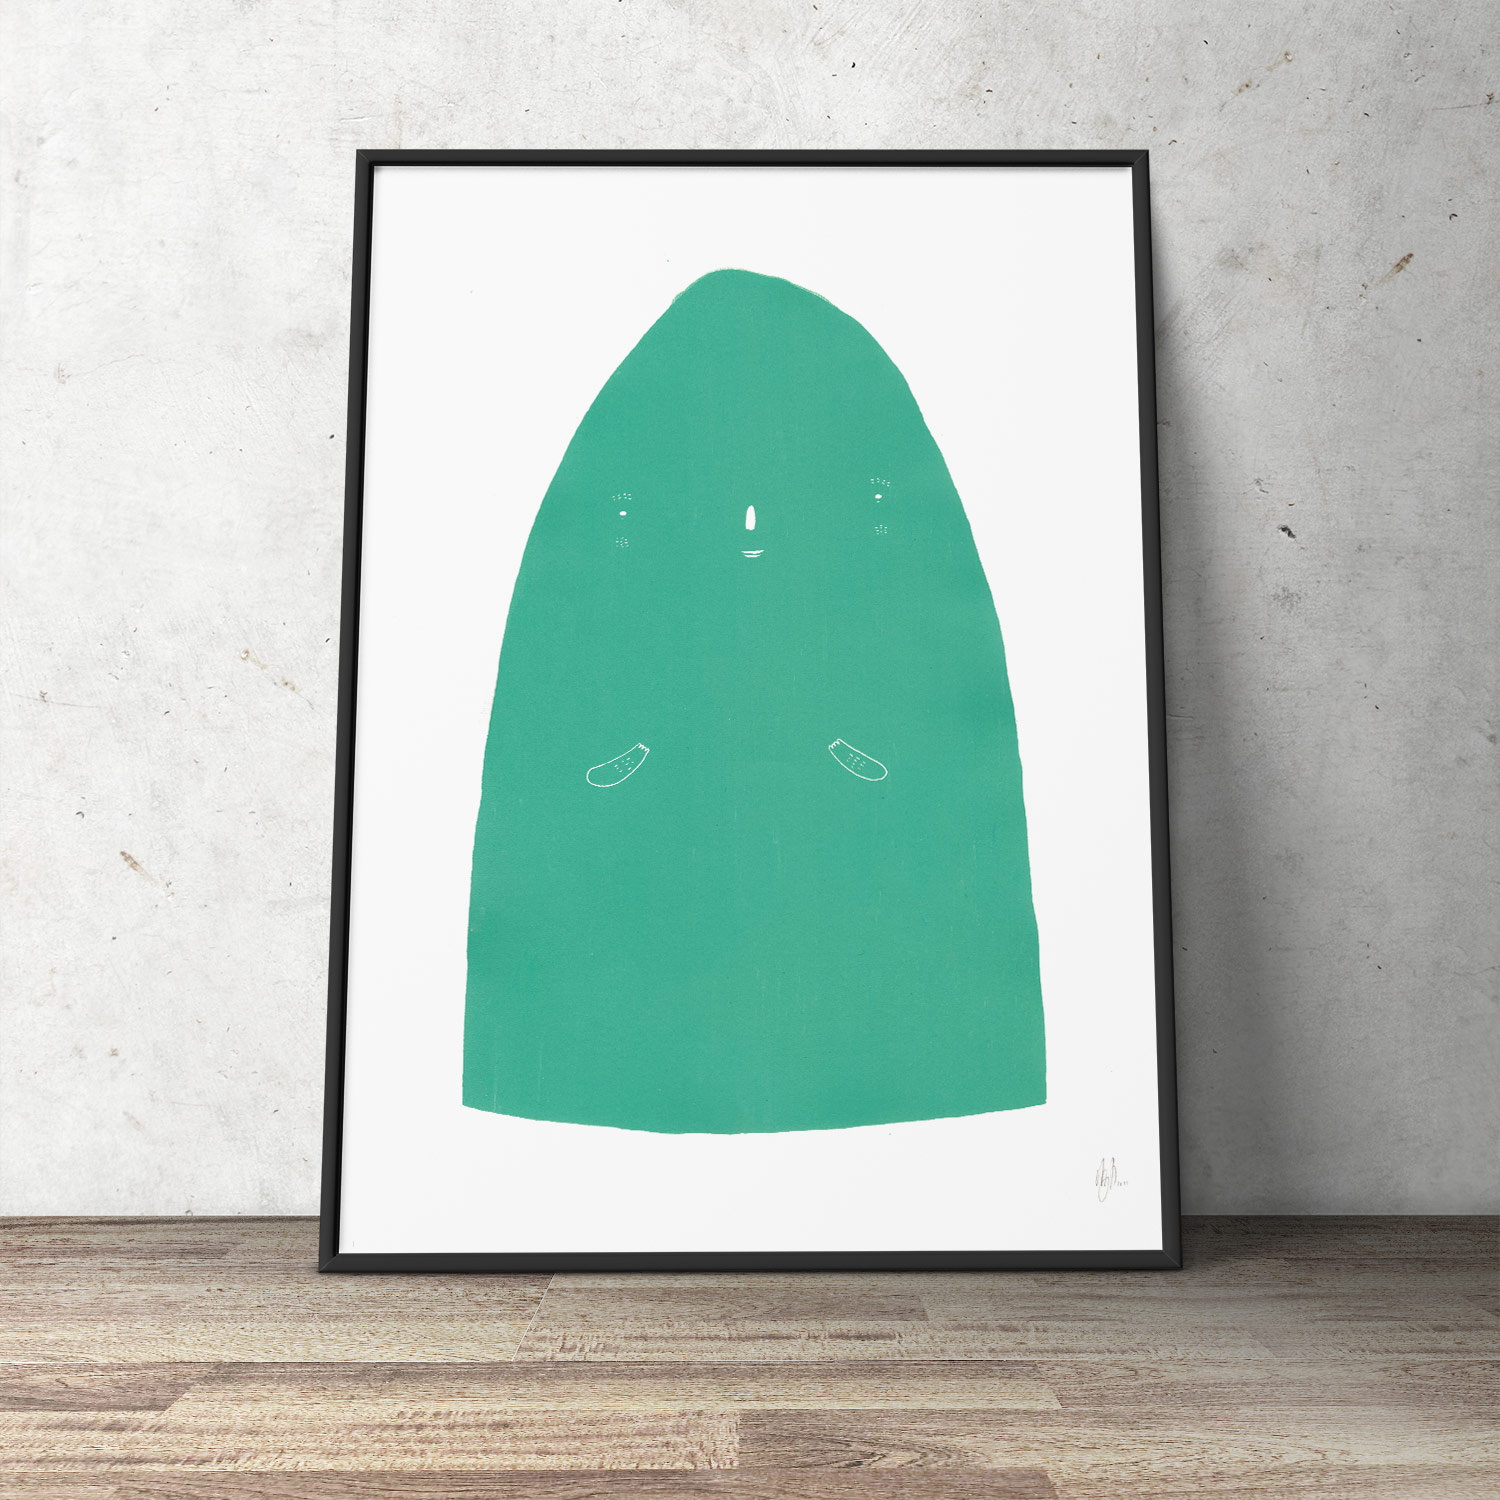 art-prints, gliceé, aesthetic, family-friendly, graphical, illustrative, surrealistic, cartoons, children, humor, pets, turquoise, white, ink, paper, abstract-forms, mountains, scenery, Buy original high quality art. Paintings, drawings, limited edition prints & posters by talented artists.